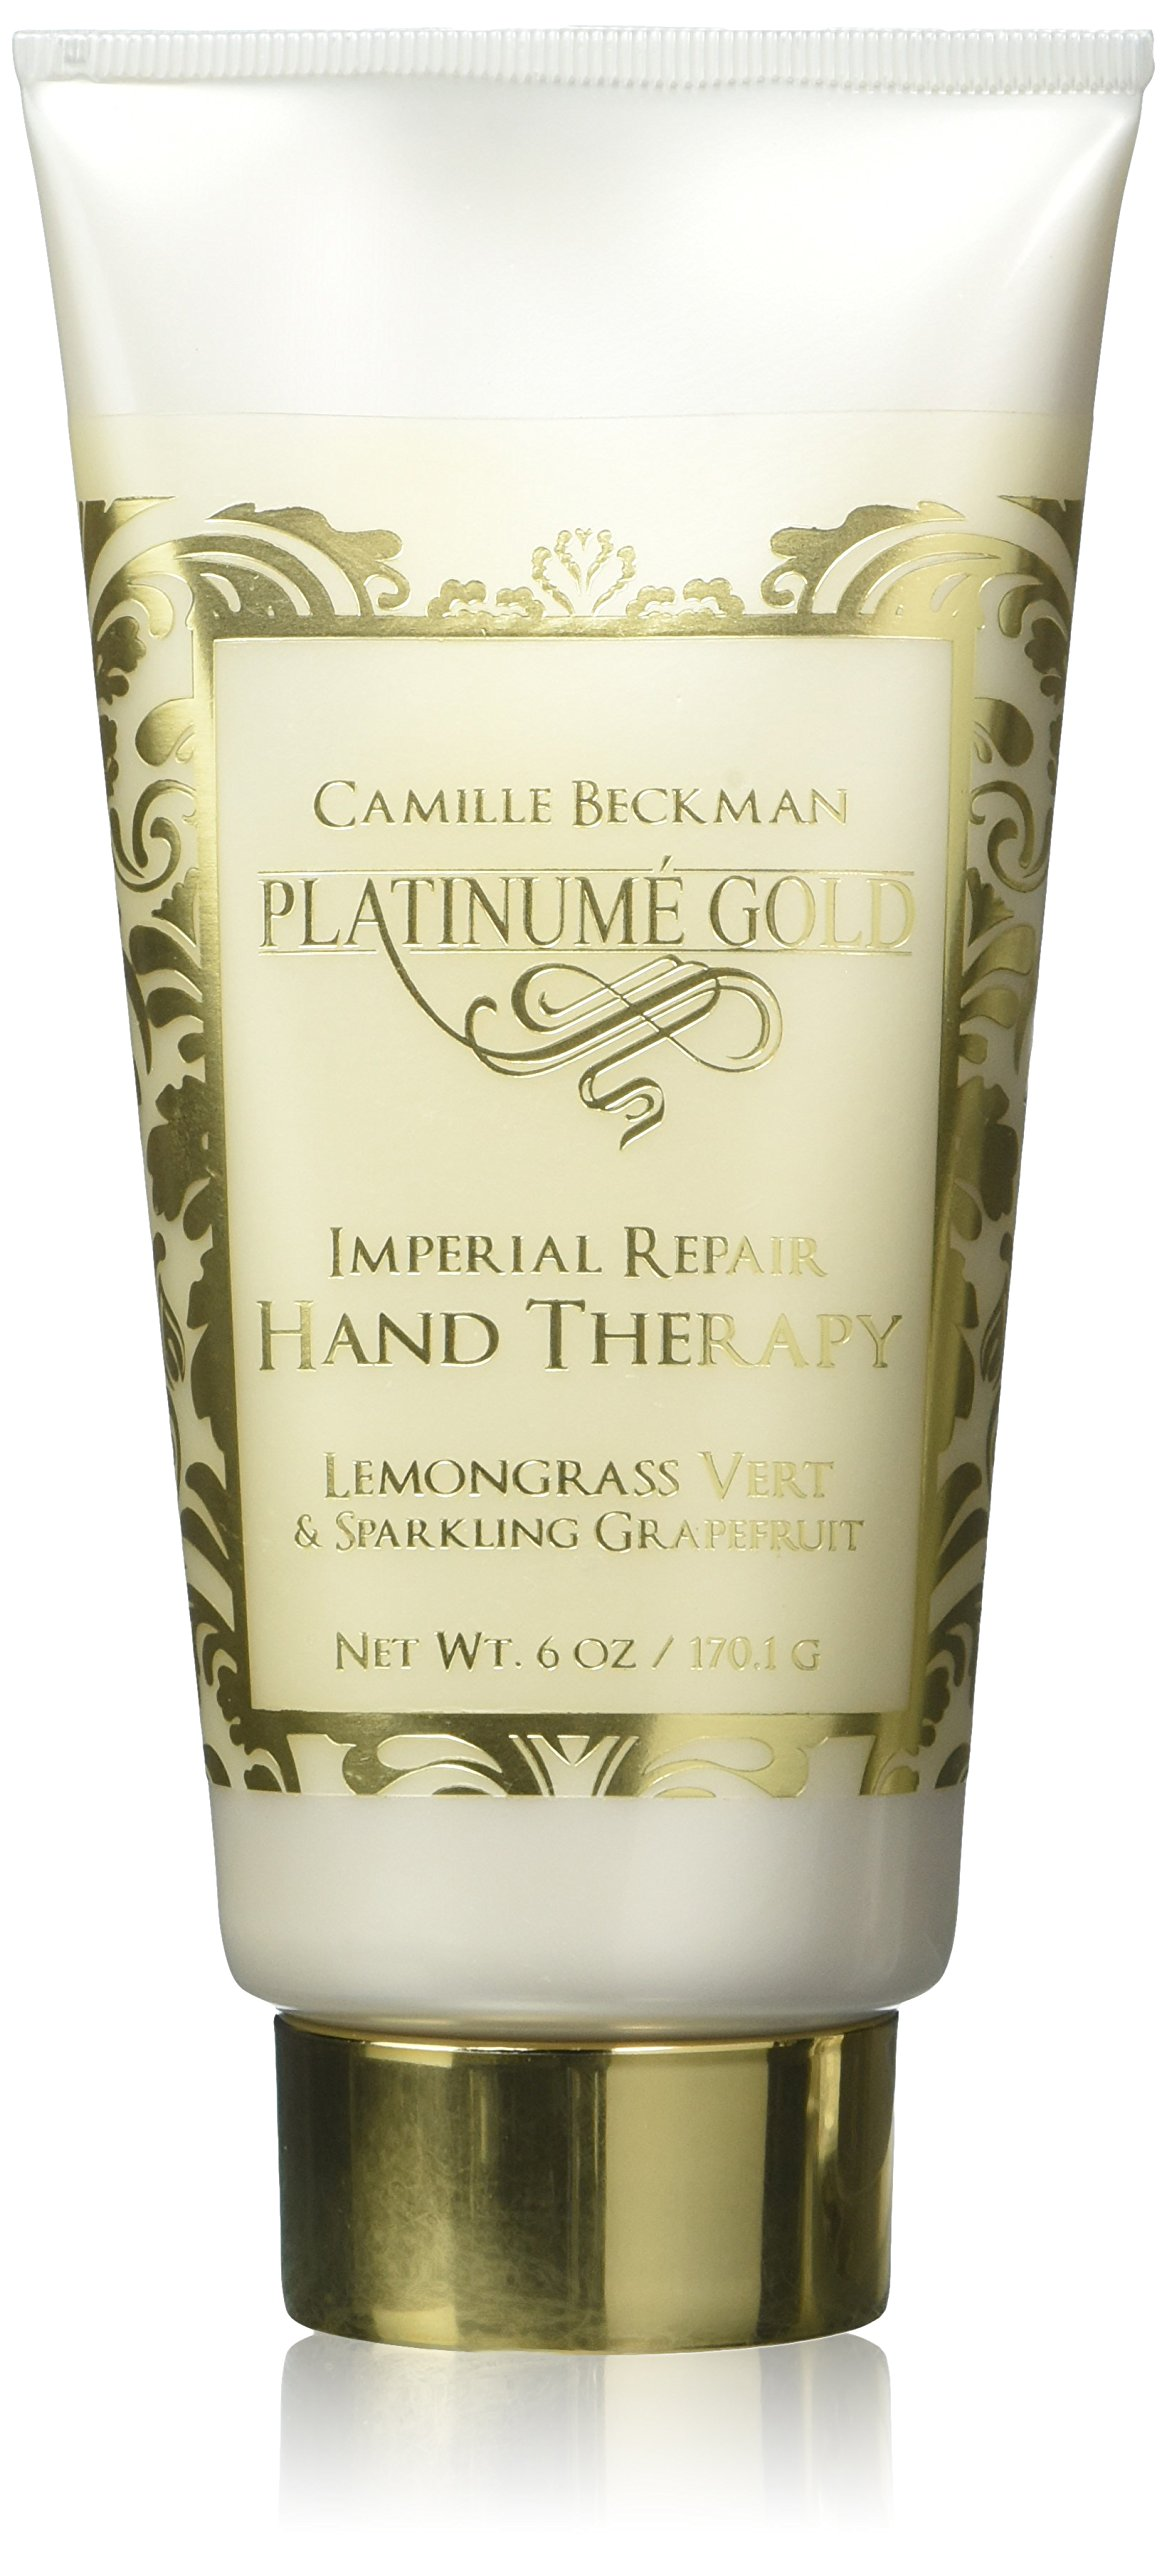 Camille Beckman Platinume Gold Imperial Repair Hand Prime Skin And Lotion Therapy Lemongrass Vert Sparkling Grapefruit 6 Oz Beauty